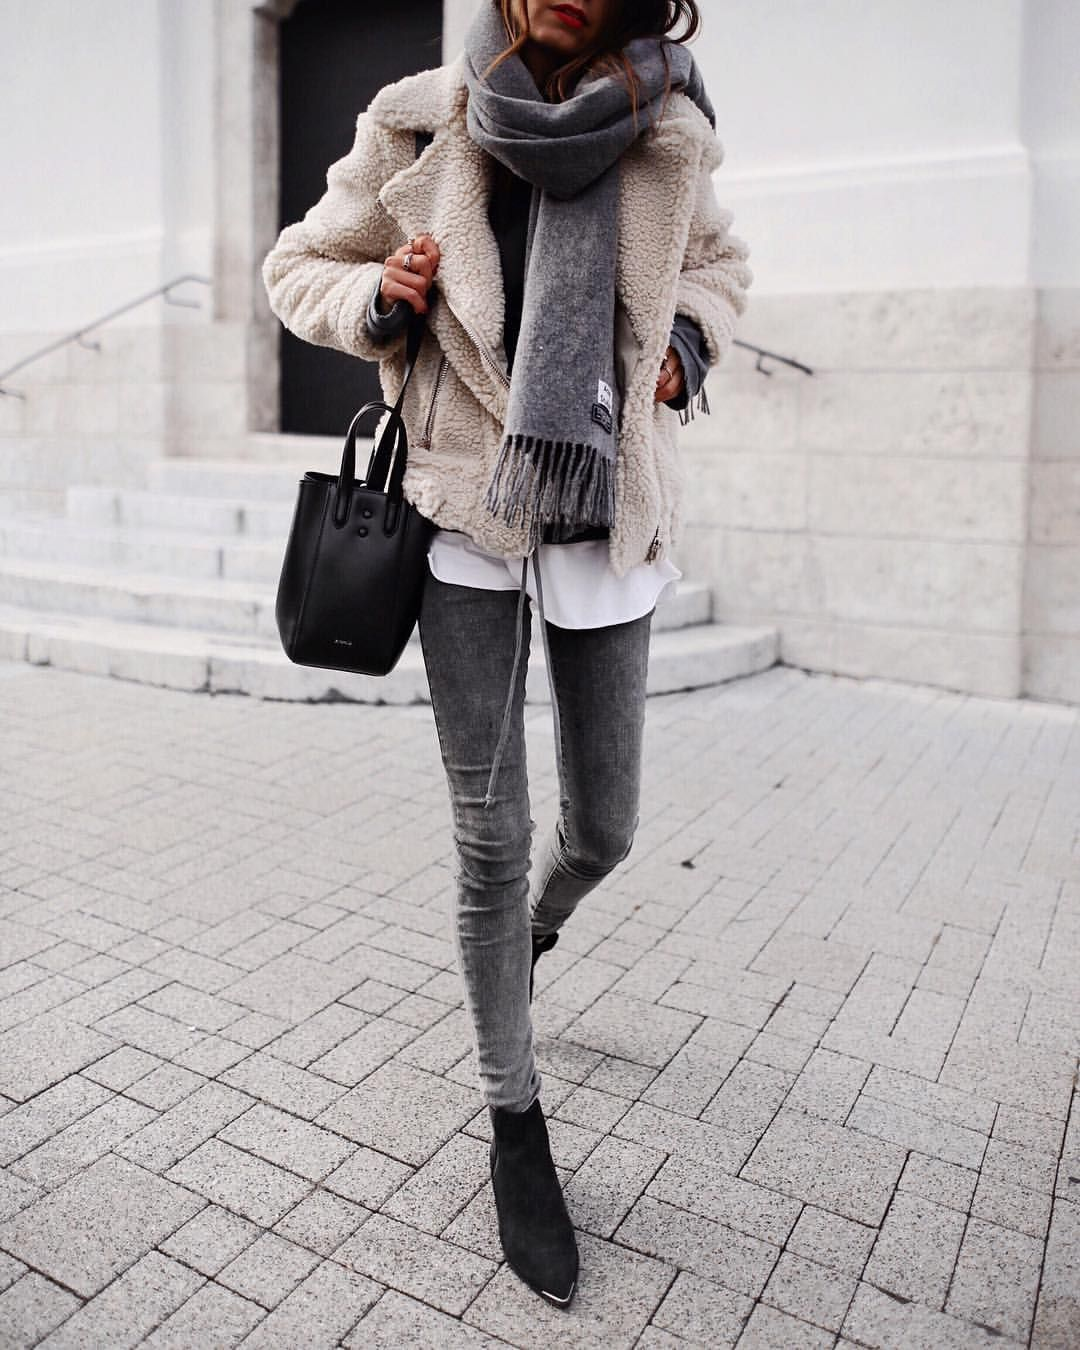 How to Dress to Impress When Traveling the World - Style My Day - travel outfit ideas - layering while traveling - the art of layering clothing - winter layering - travel fashion tips